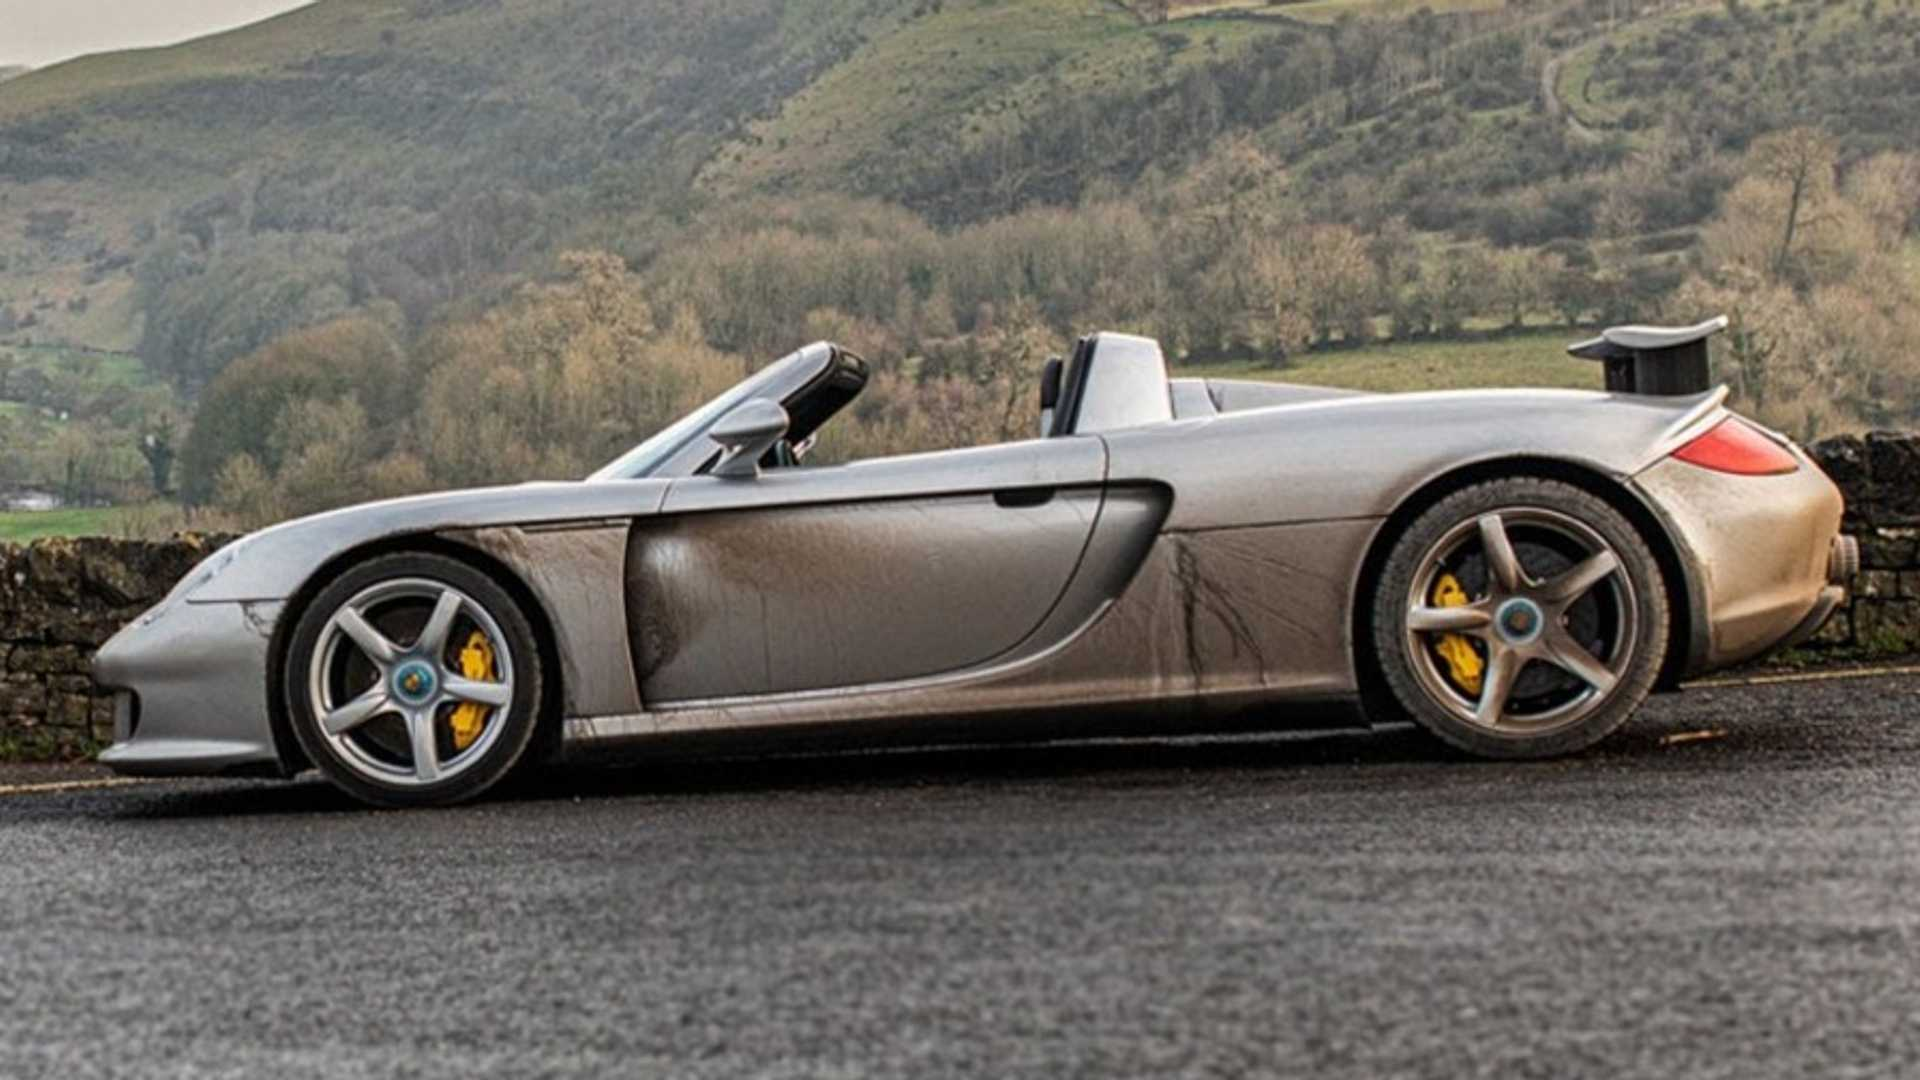 67,000-mile Porsche Carrera GT shows cars are meant to be driven